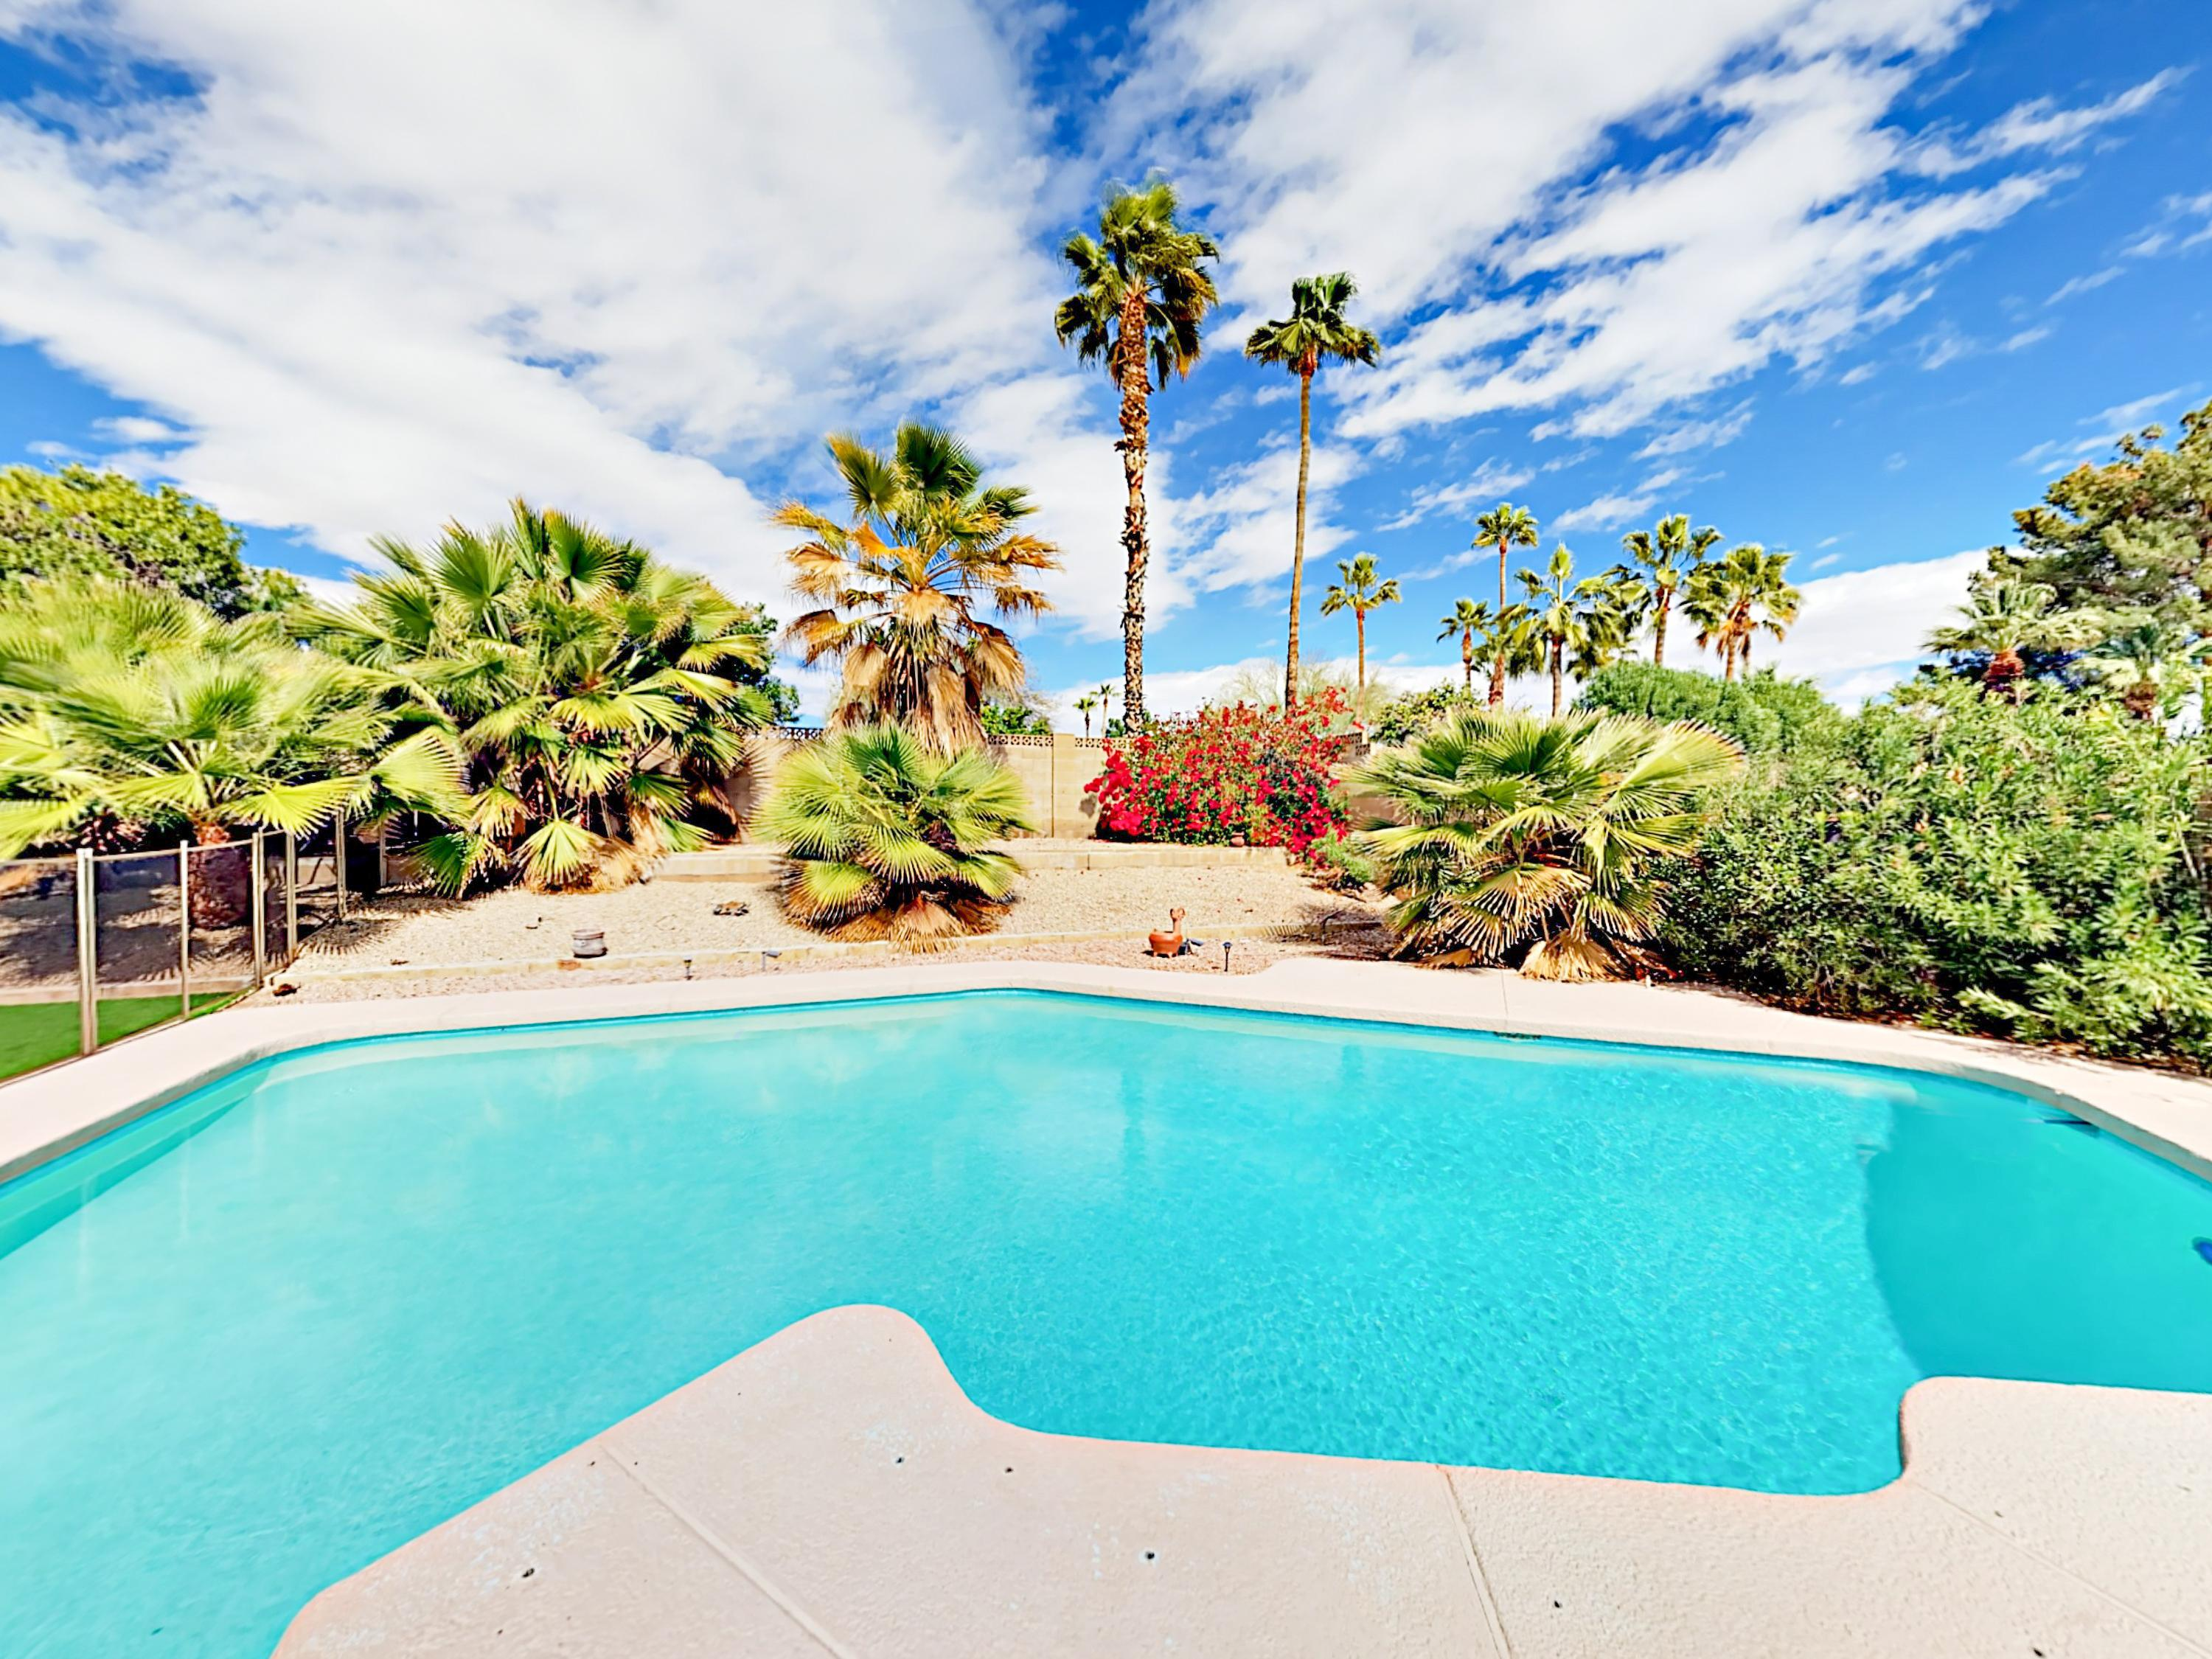 Welcome to Scottsdale! Lush landscaping surrounds the fenced private and heated pool. This inviting home is professionally managed and maintained by TurnKey Vacation Rentals.